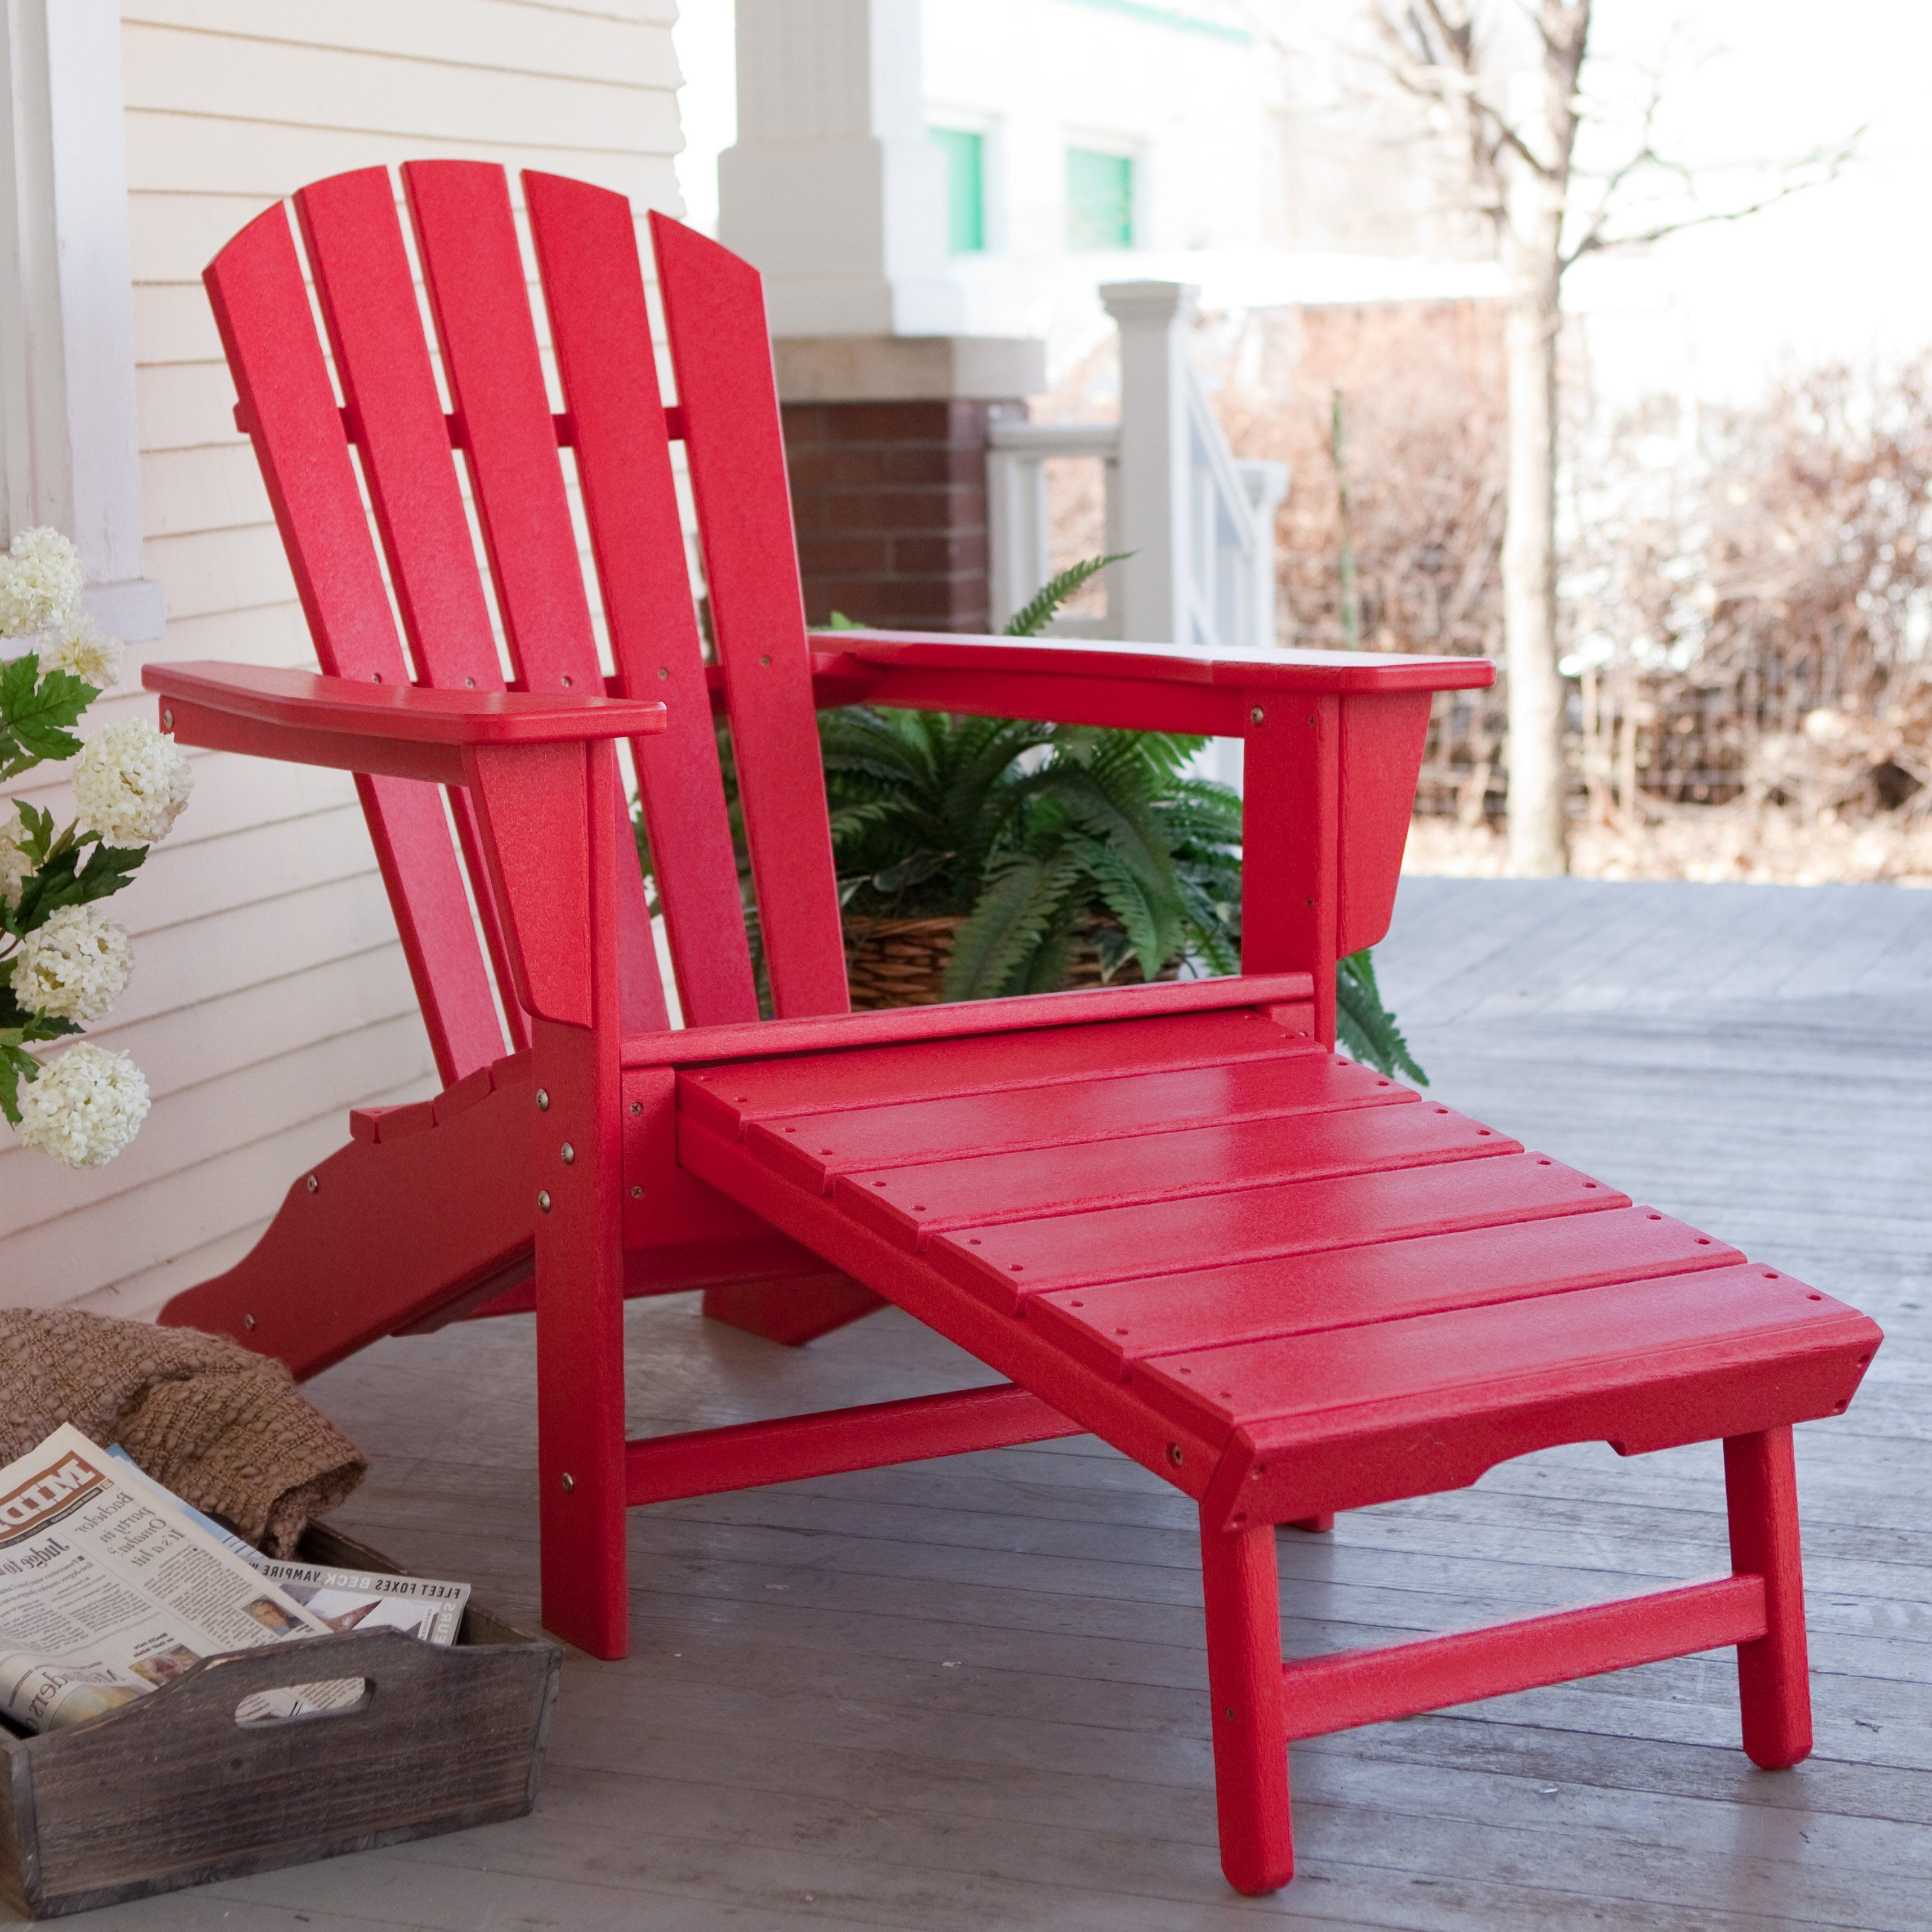 Polywood Recycled Plastic Daddy Adirondack Chair With Pull Out Ottoman 339 98 Hayneedle